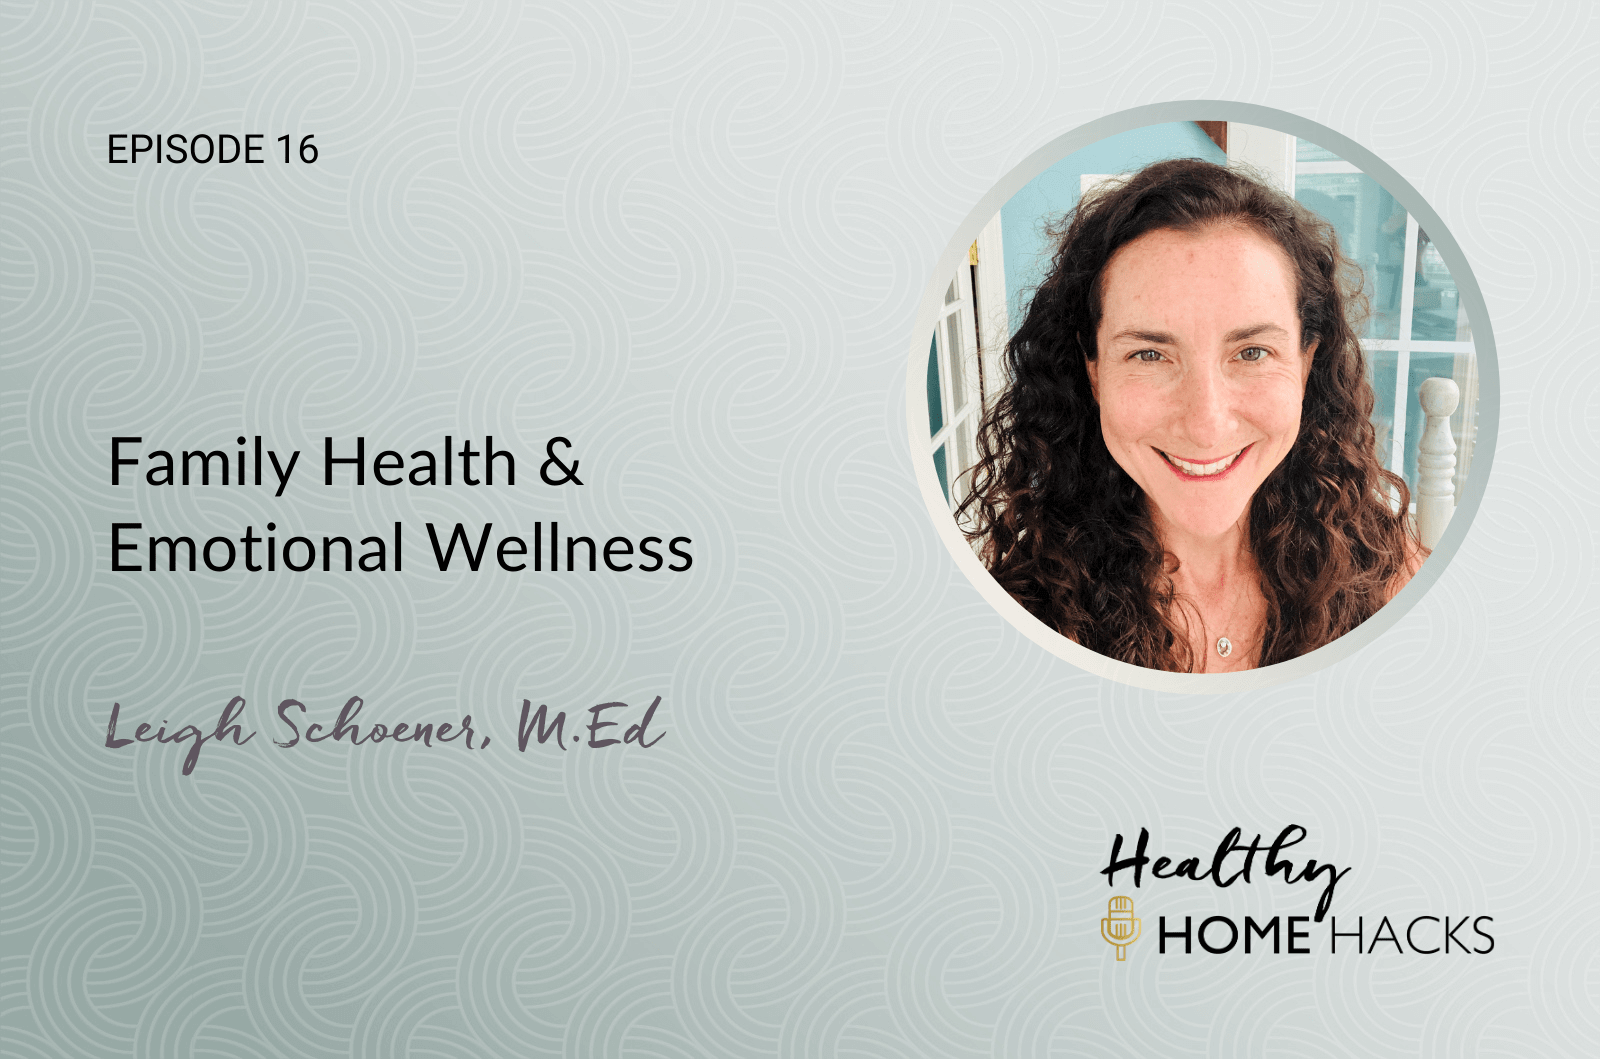 Family Health & Emotional Wellness